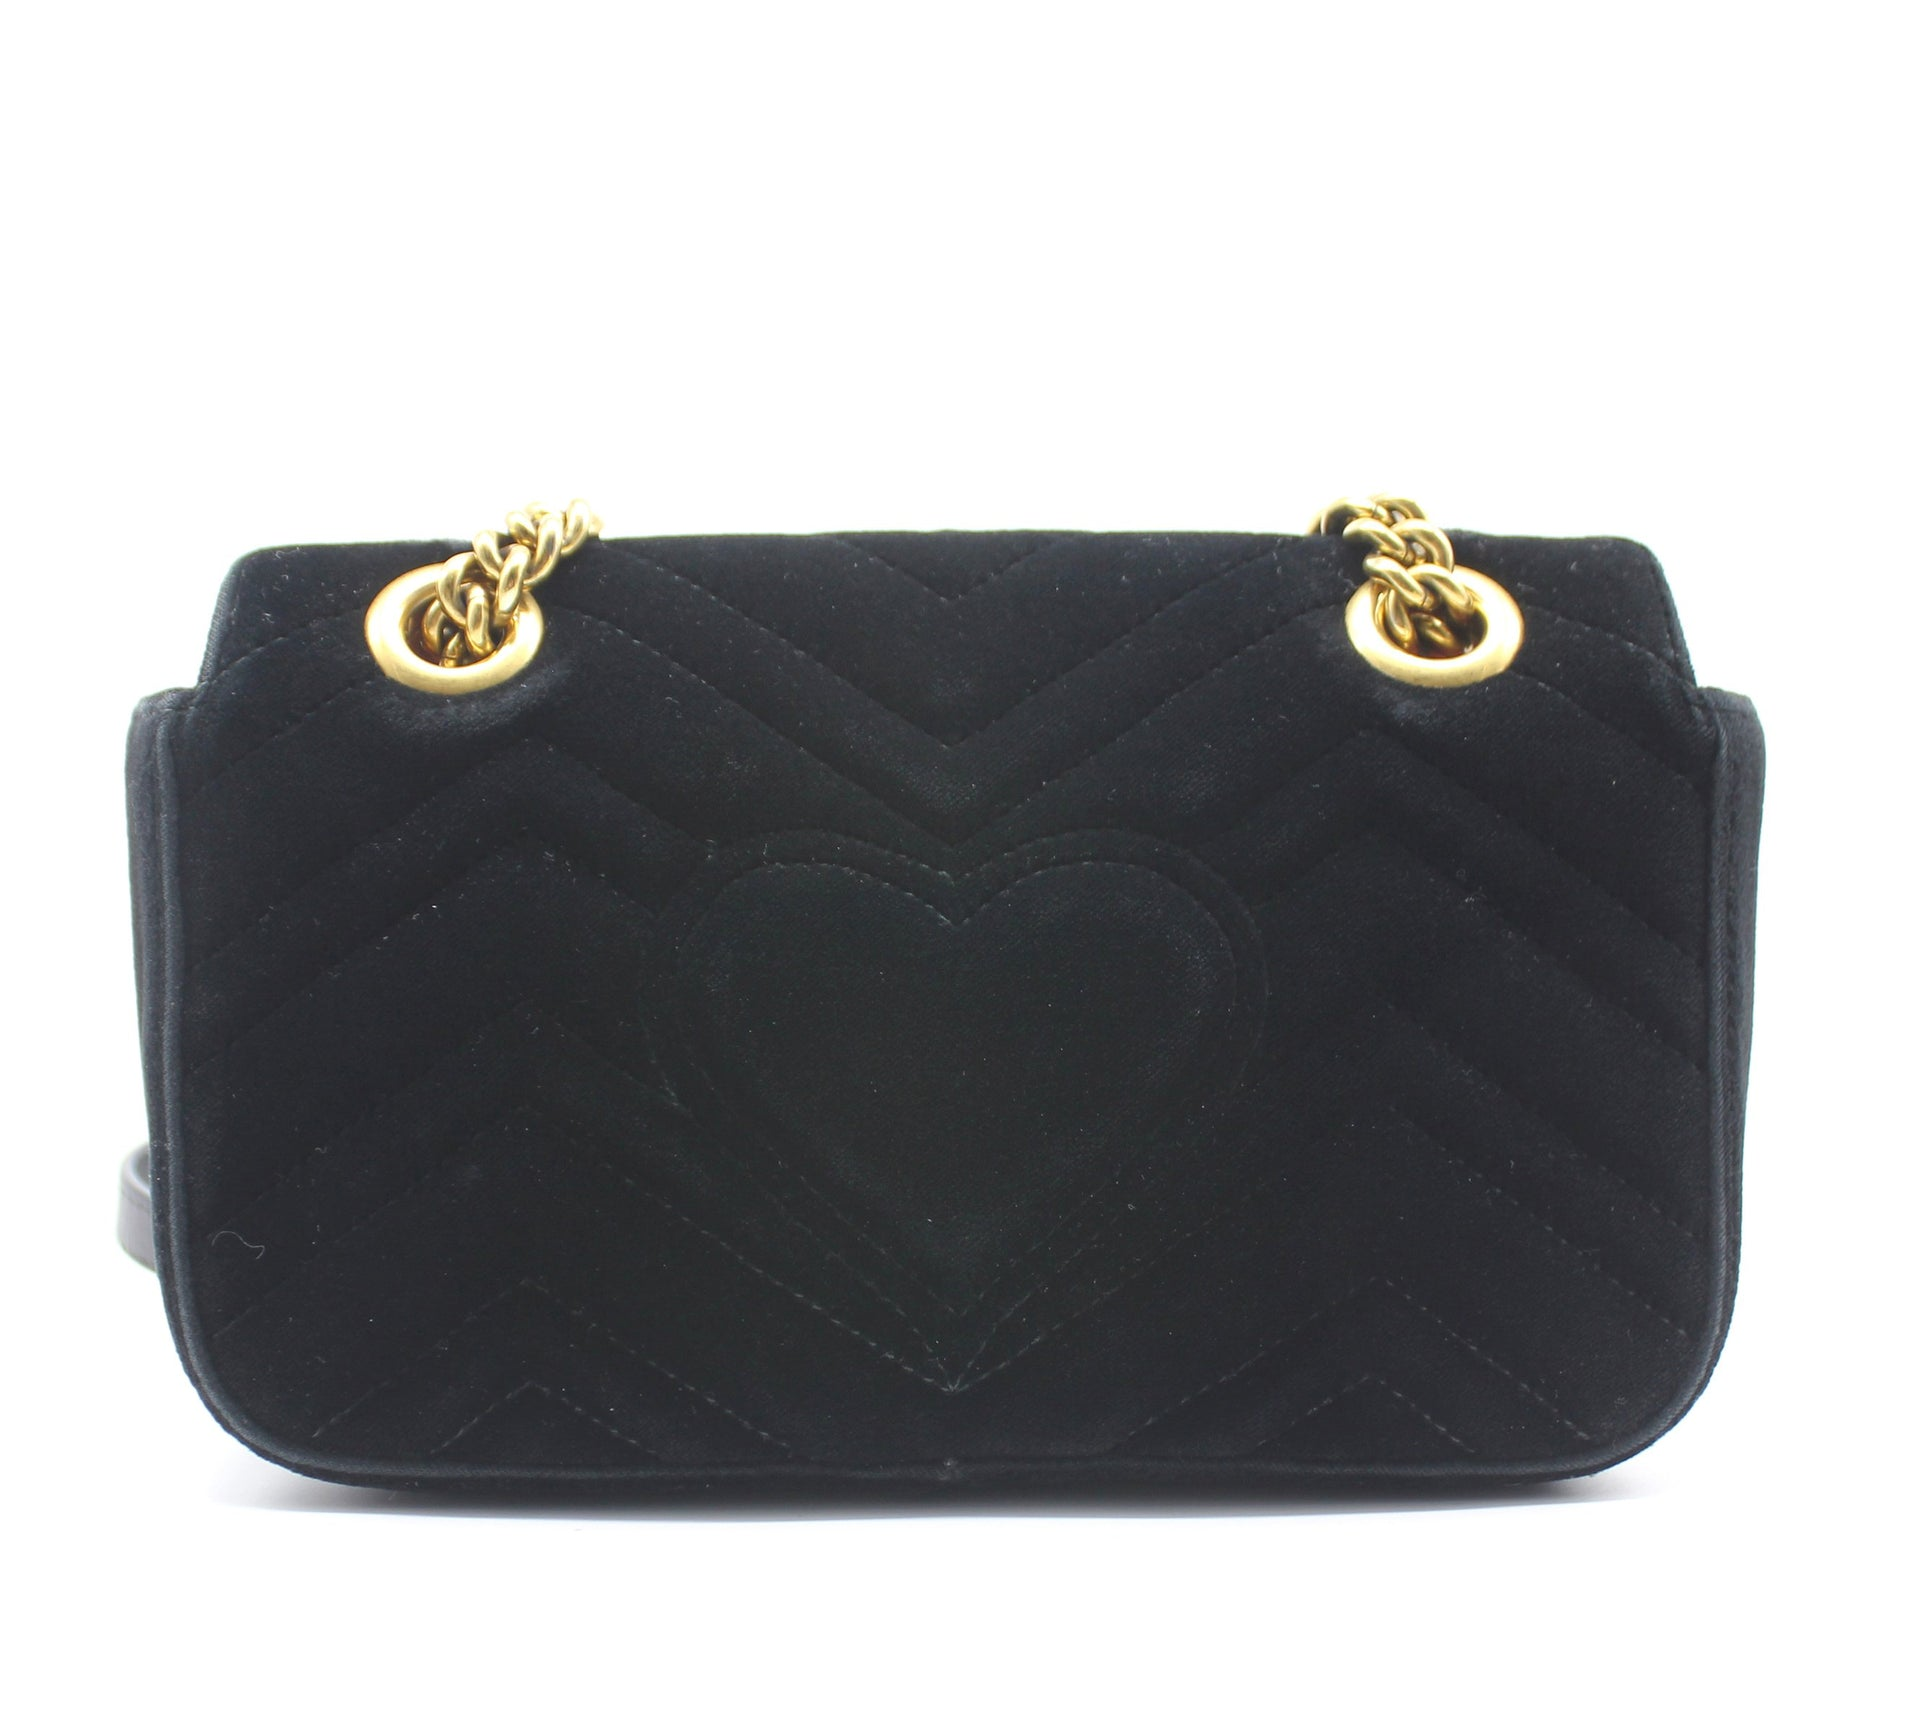 Gucci GG Marmont Small Velvet Quilted Shoulder Bag